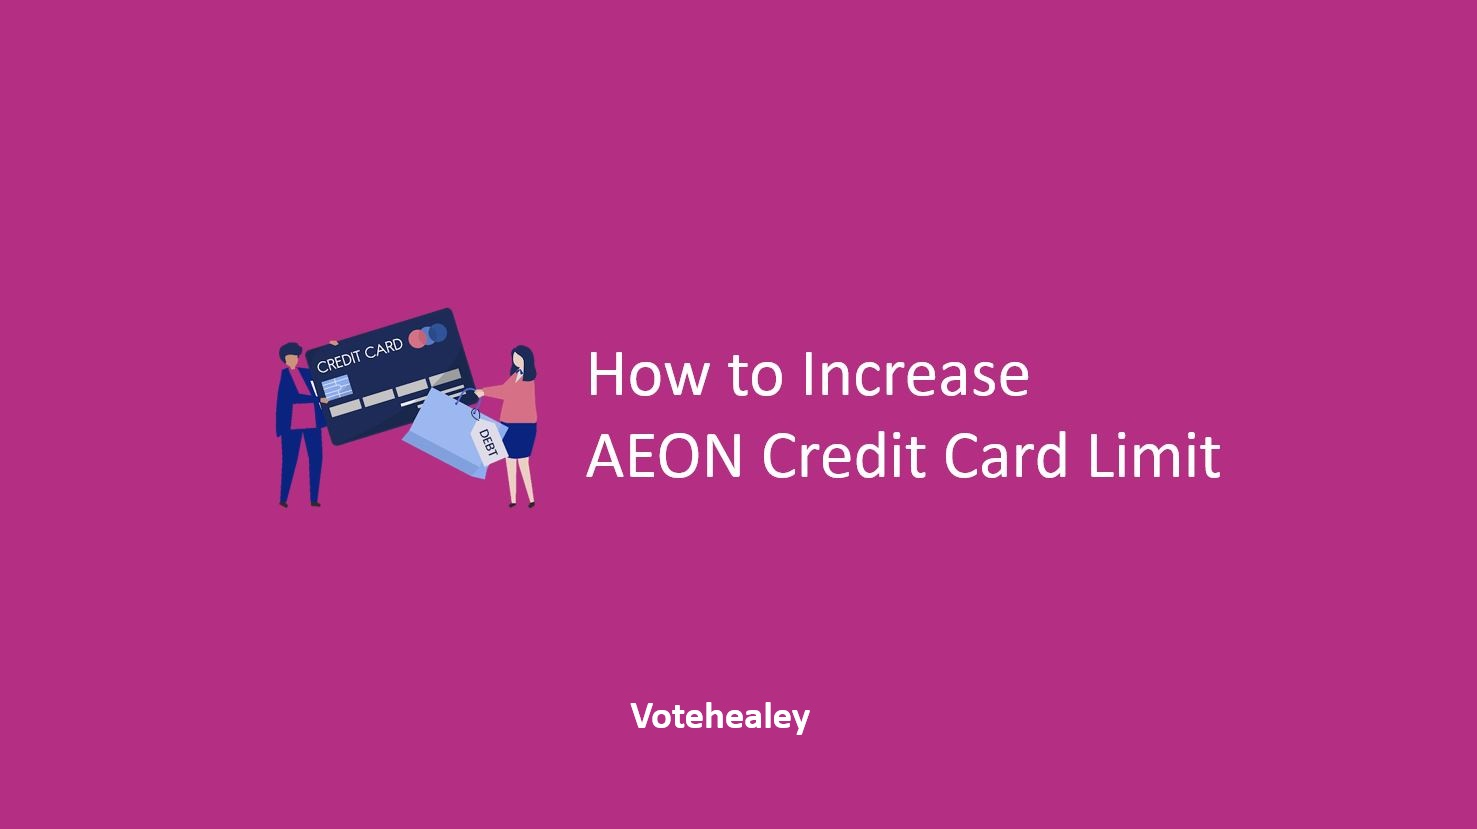 How to Increase AEON Credit Card Limit